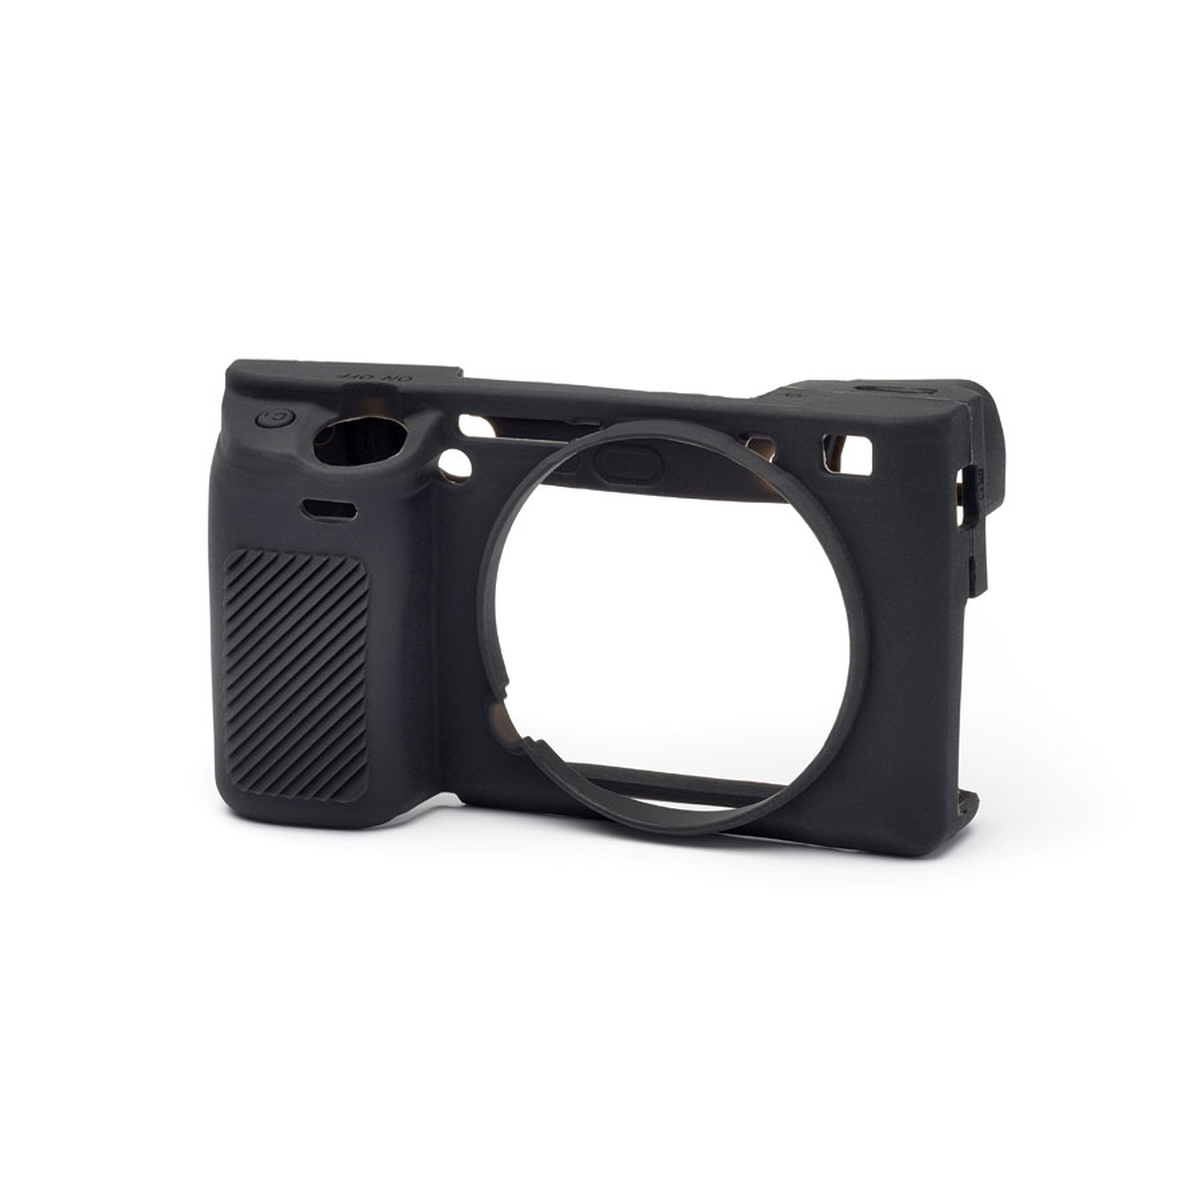 Walimex pro easyCover for Sony A6300/A6000